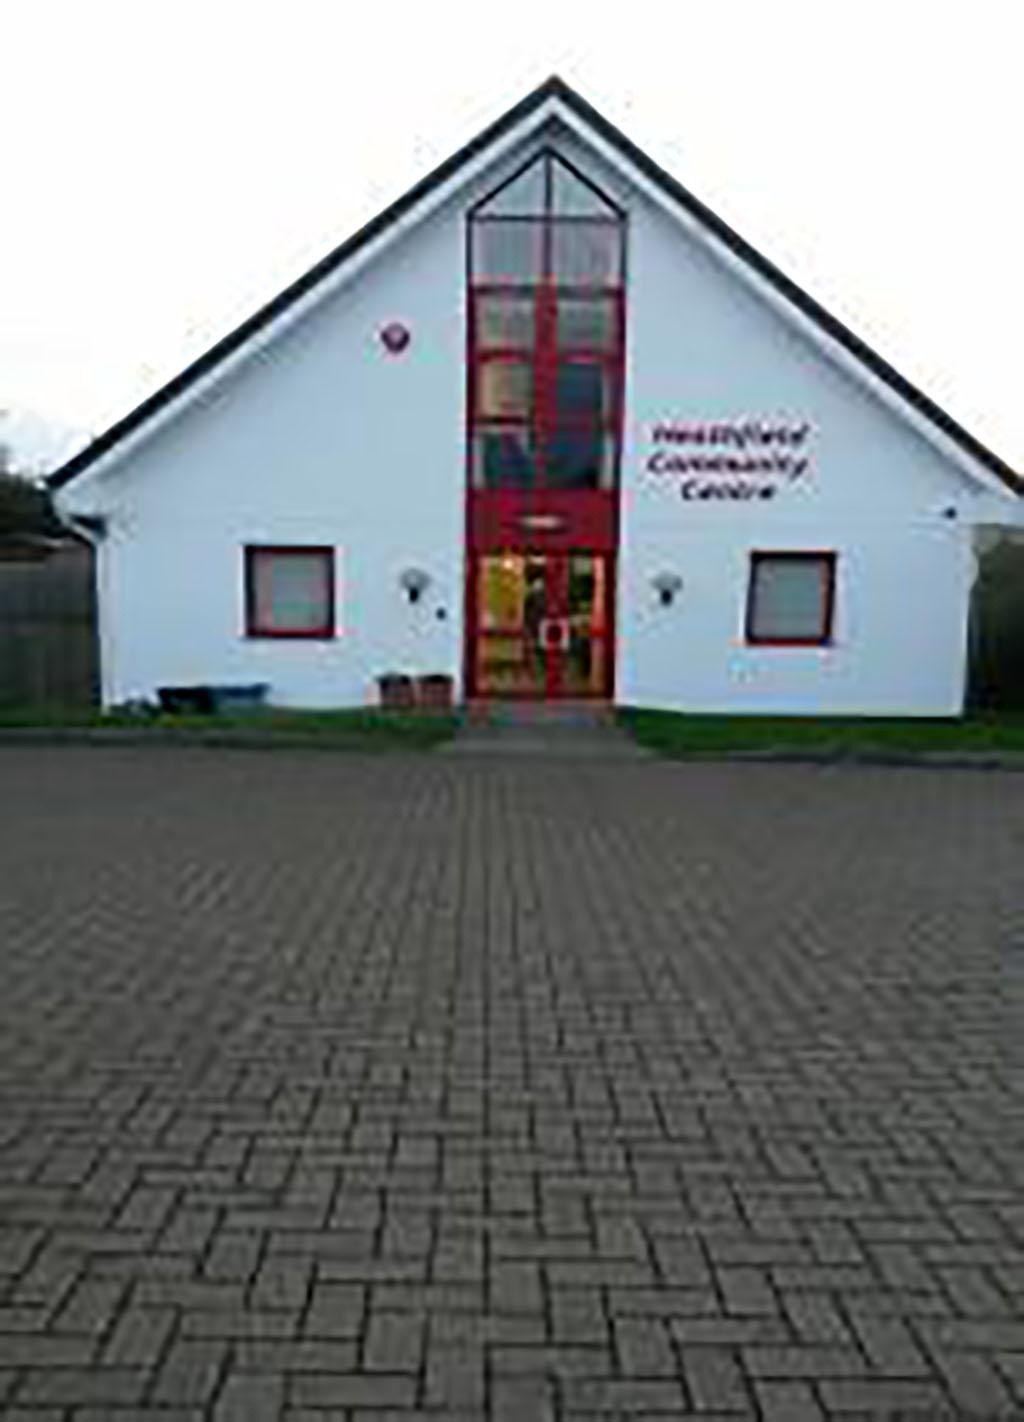 Heathfield Community Centre